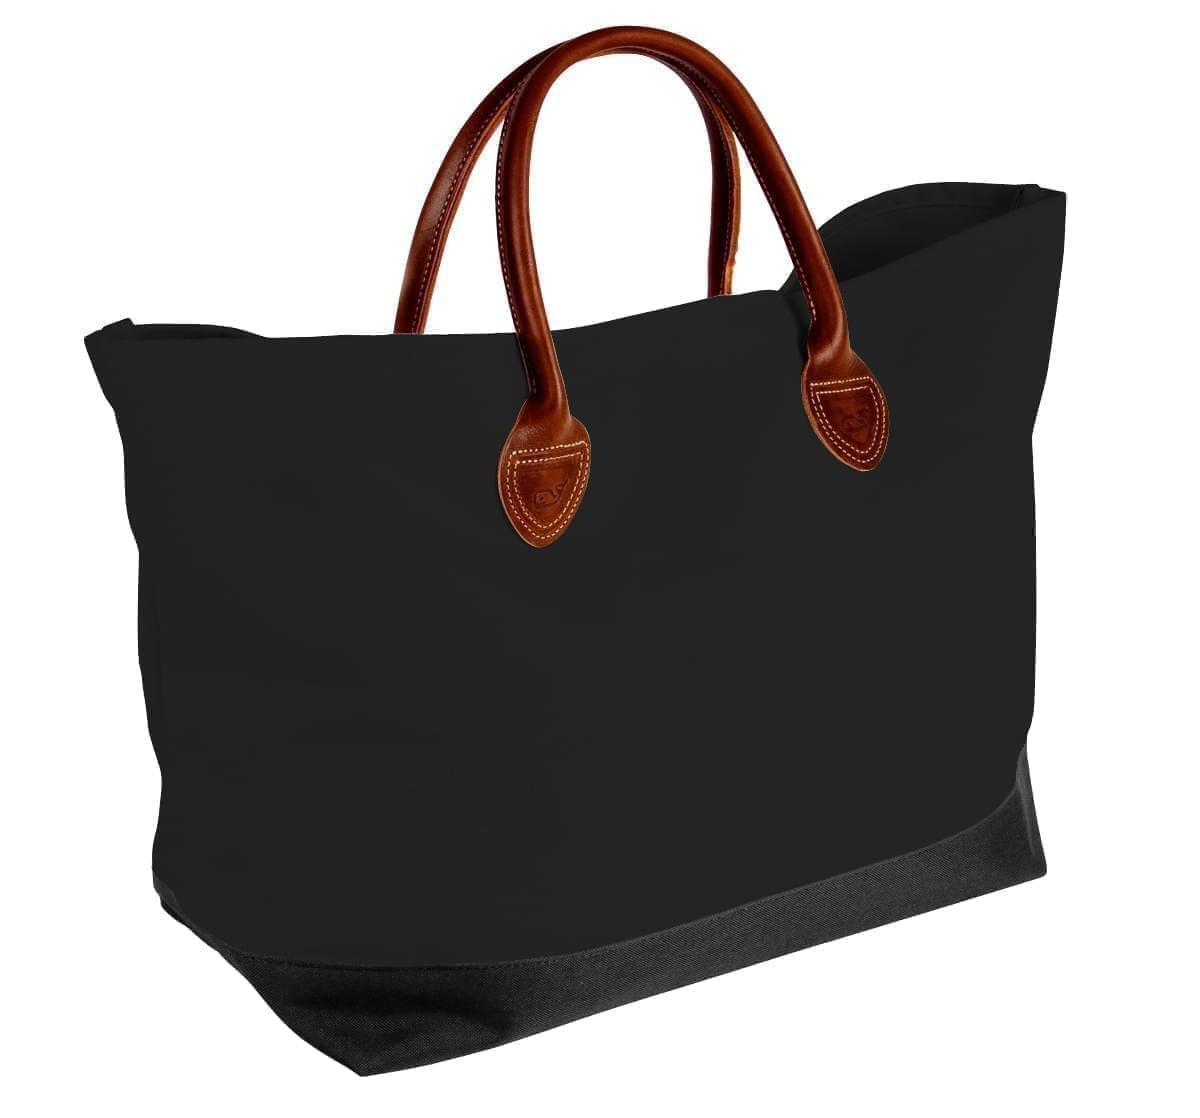 USA Made Canvas Leather Handle Totes, Black-Black, 10899-CH9